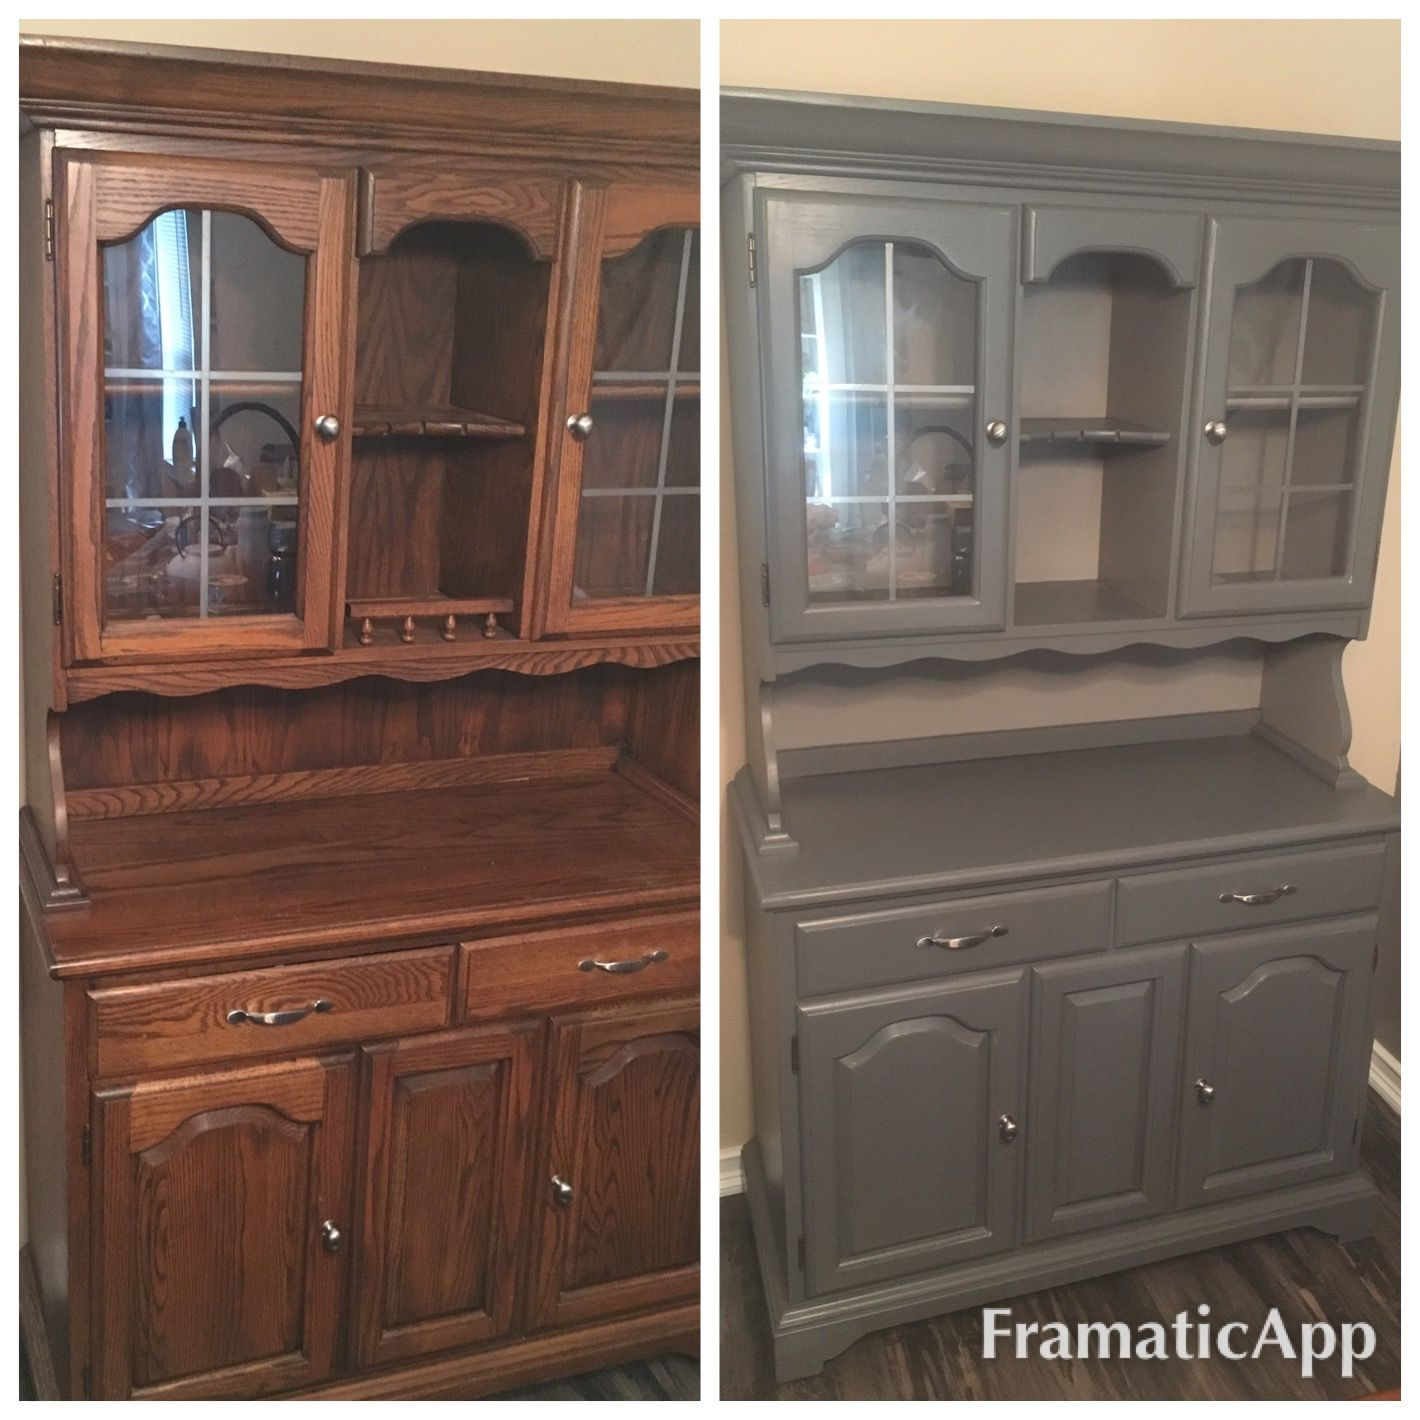 this is castle glazed rustoleum cabinet transformations. is this